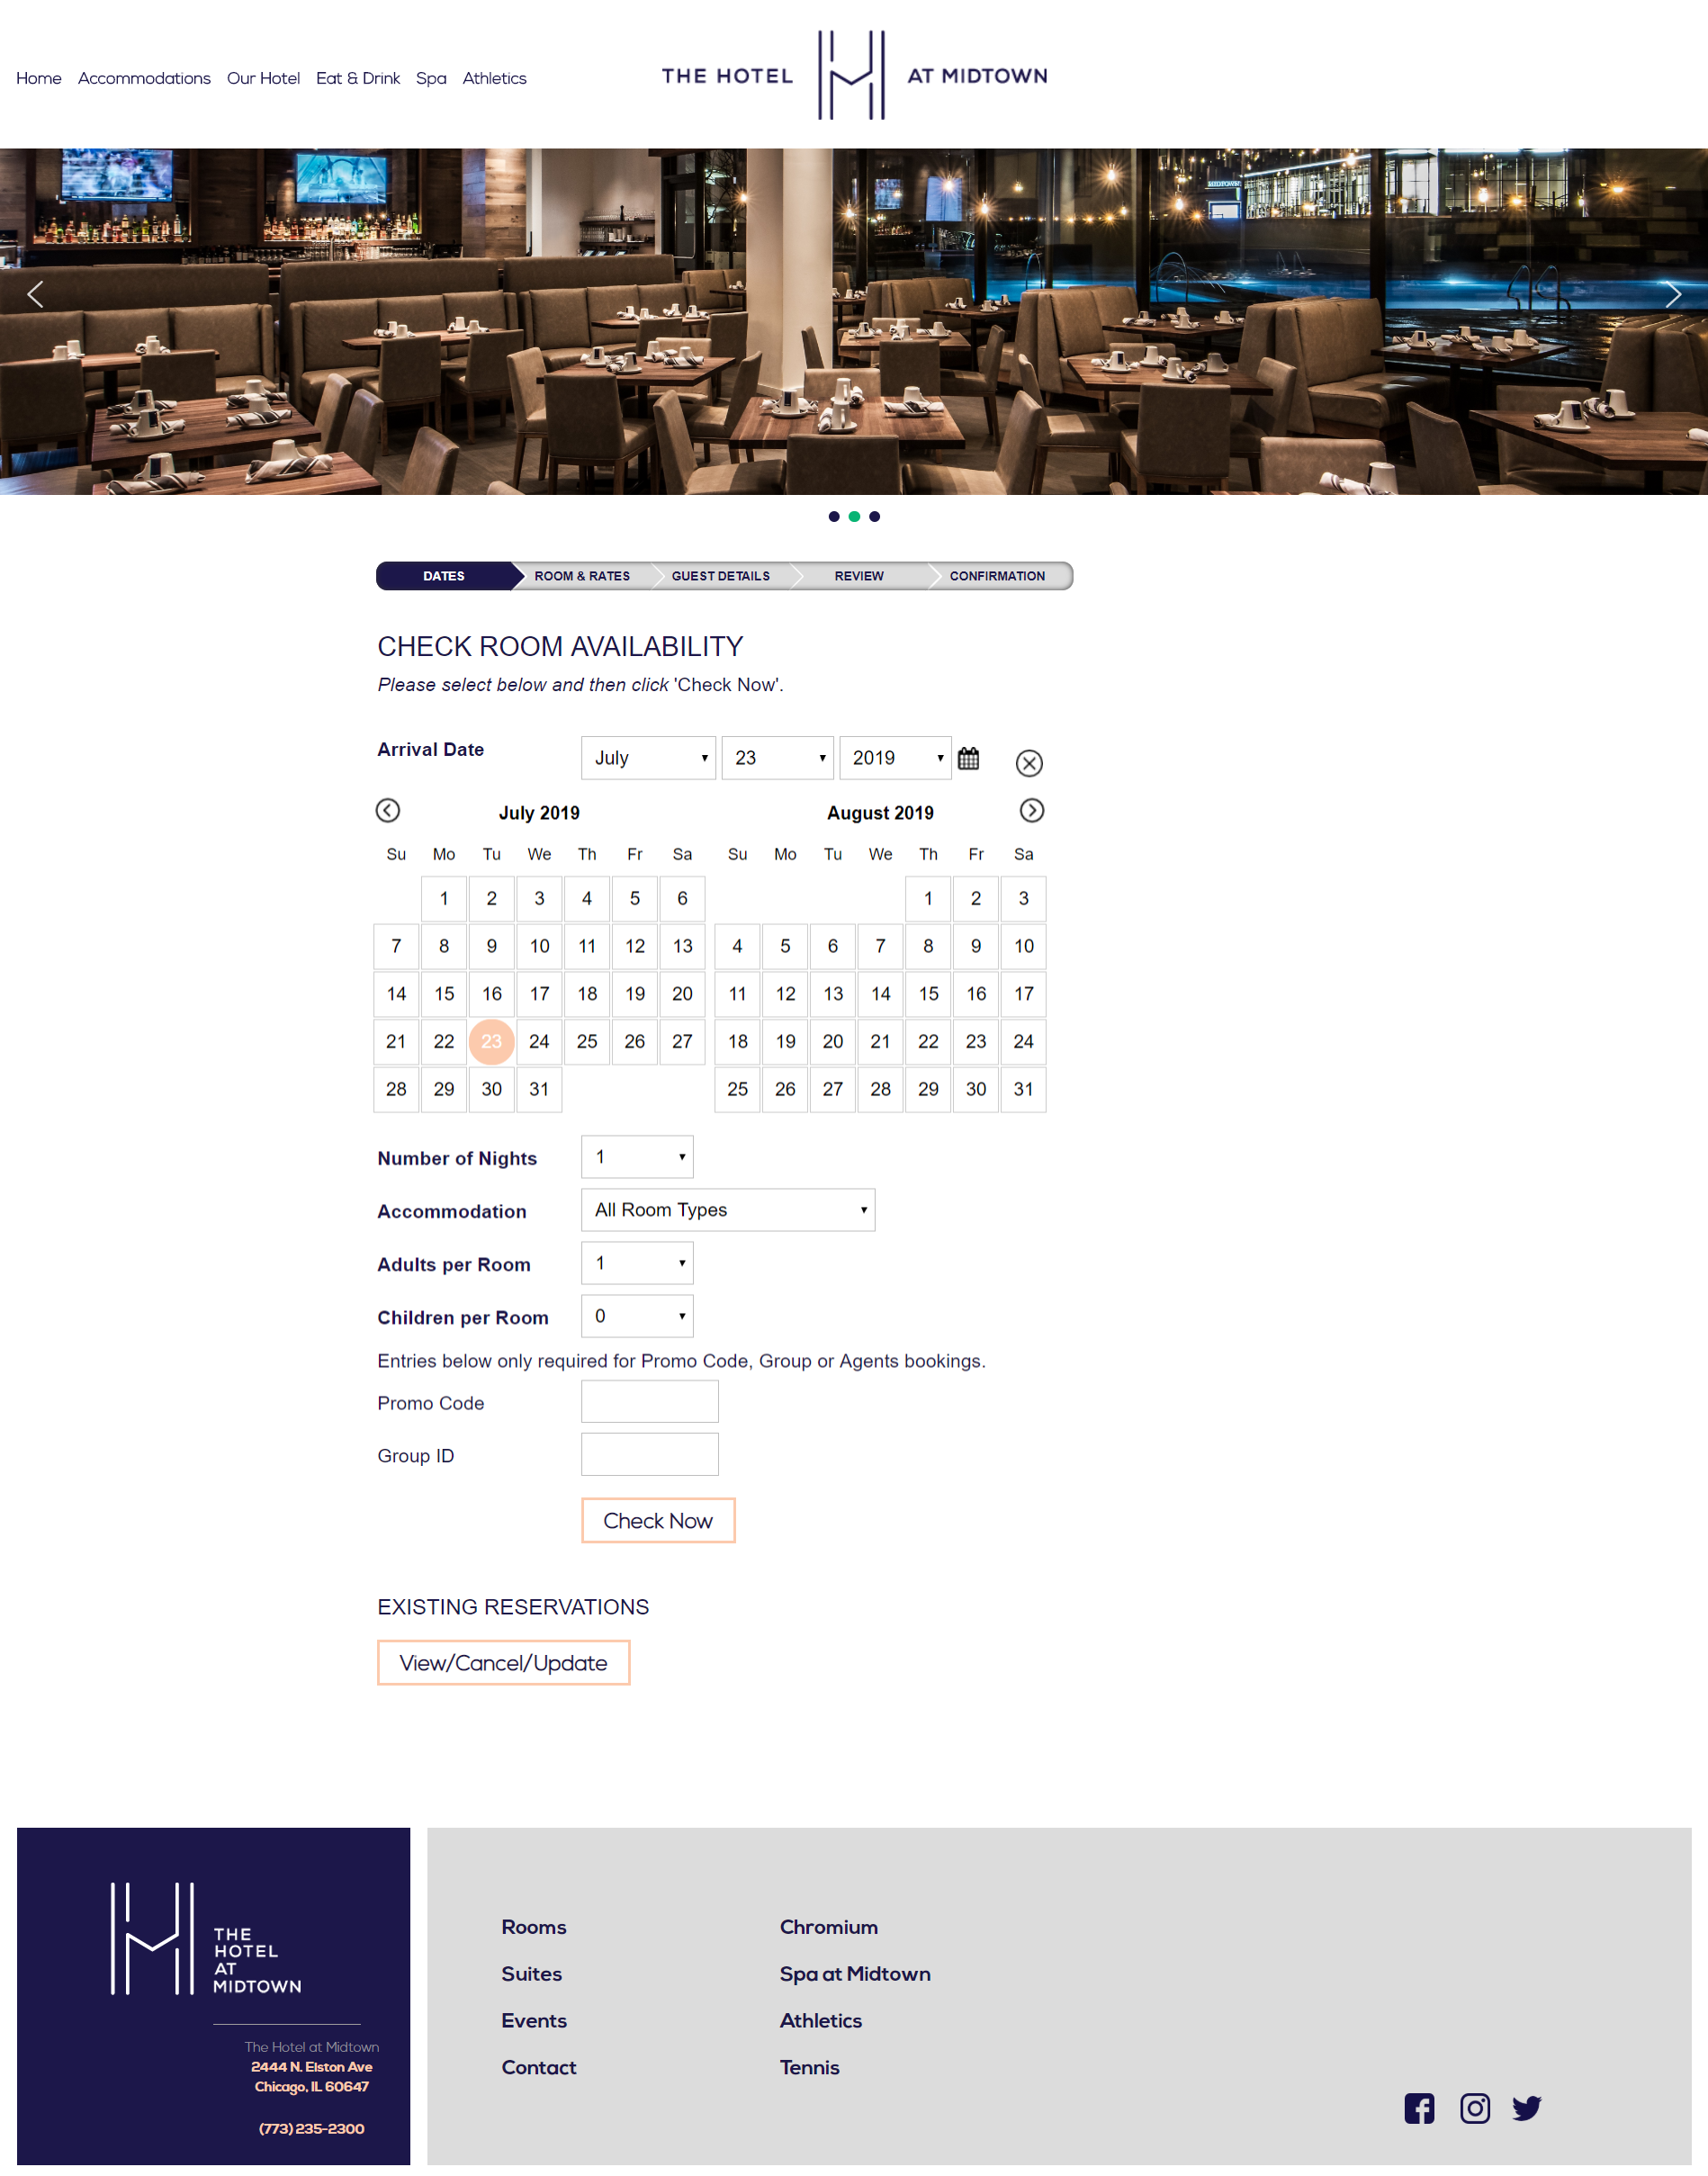 midtown booking widget is an example of a simple application